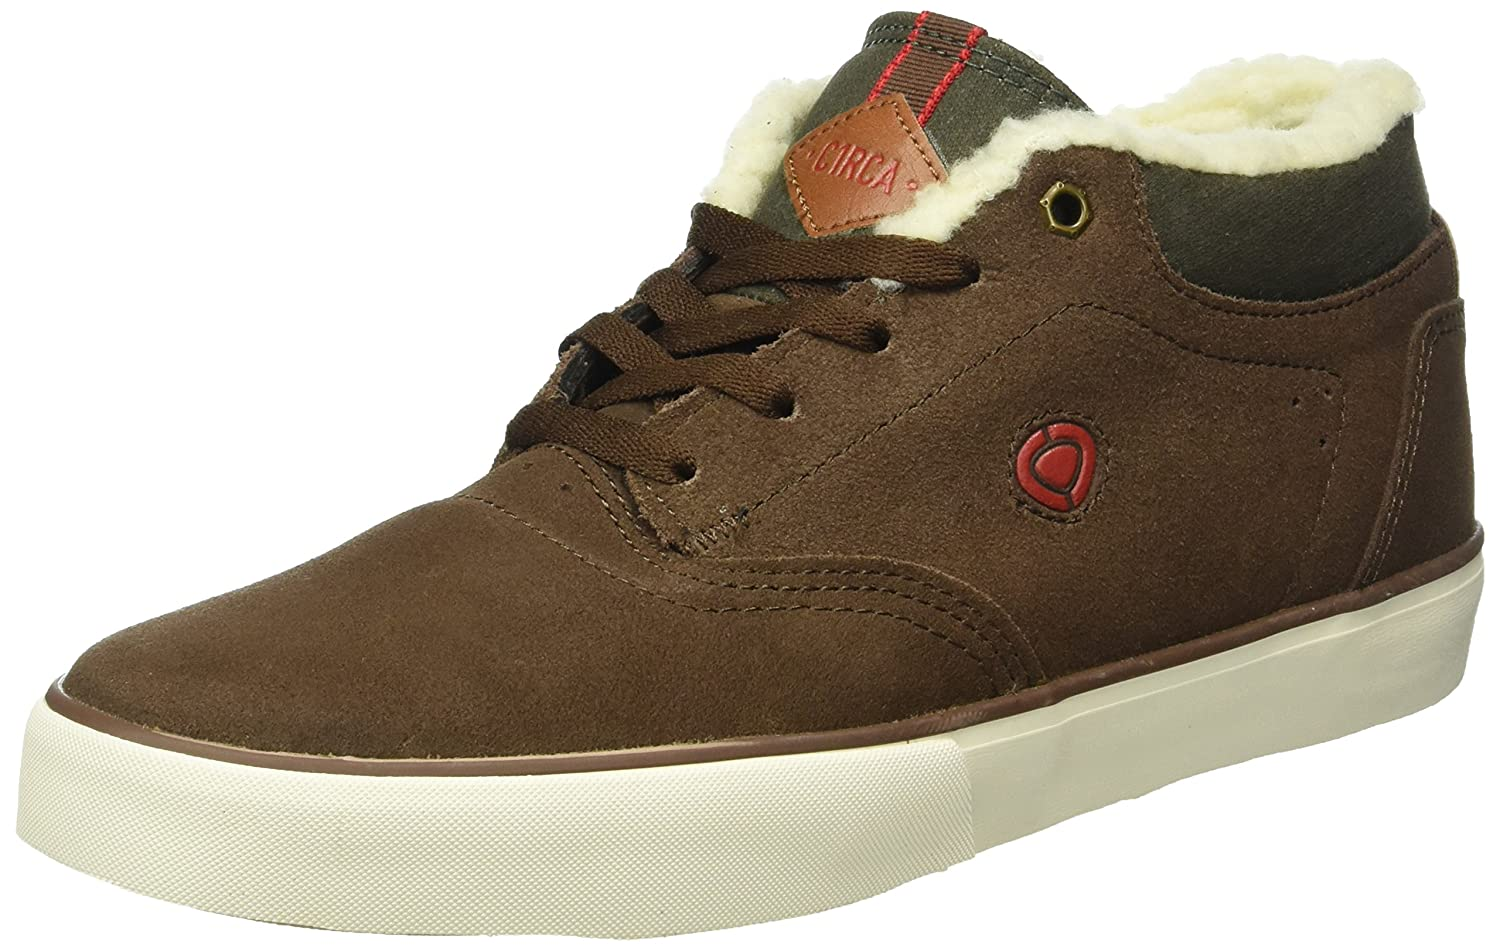 C1RCA Lakota Se, Zapatillas Unisex Adulto 47 EU|Marrón (Pinecone Olive)